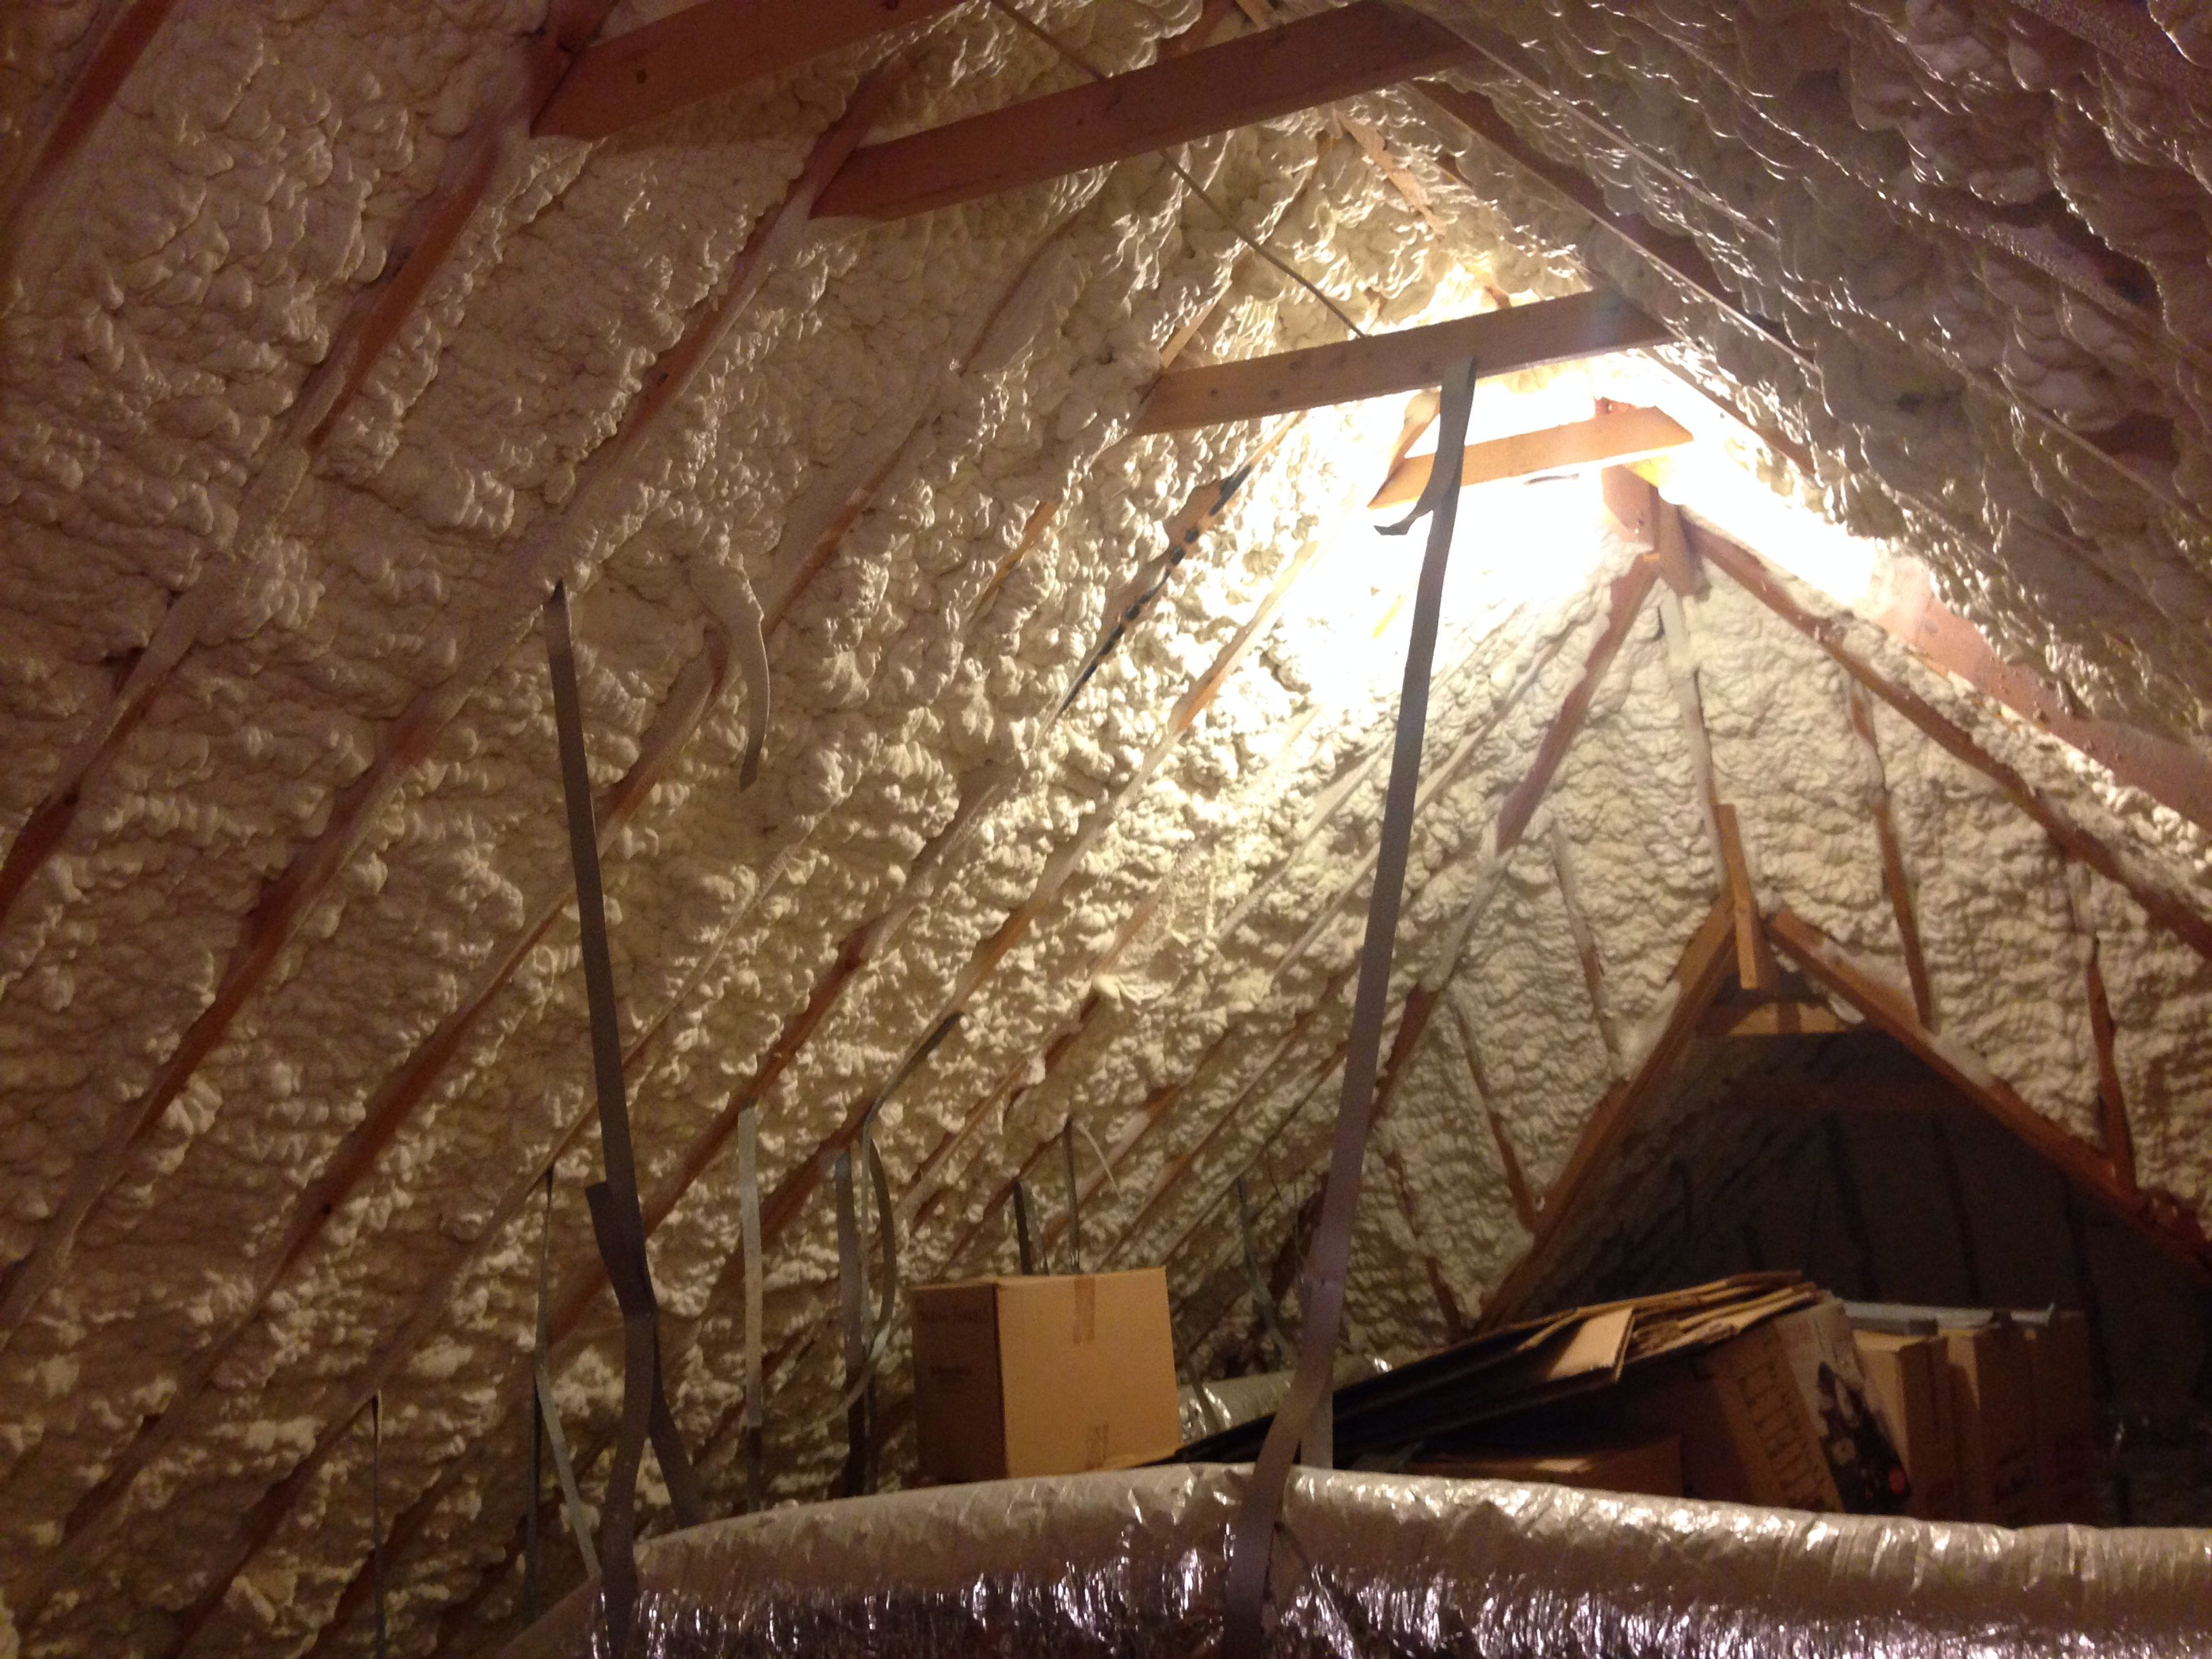 Spray Foam Insulation In Roof Deck Of Attic To Help Control Temperatures And Save On Heating And Cooling Cost Complete Attic Renovation Attic Remodel Playroom